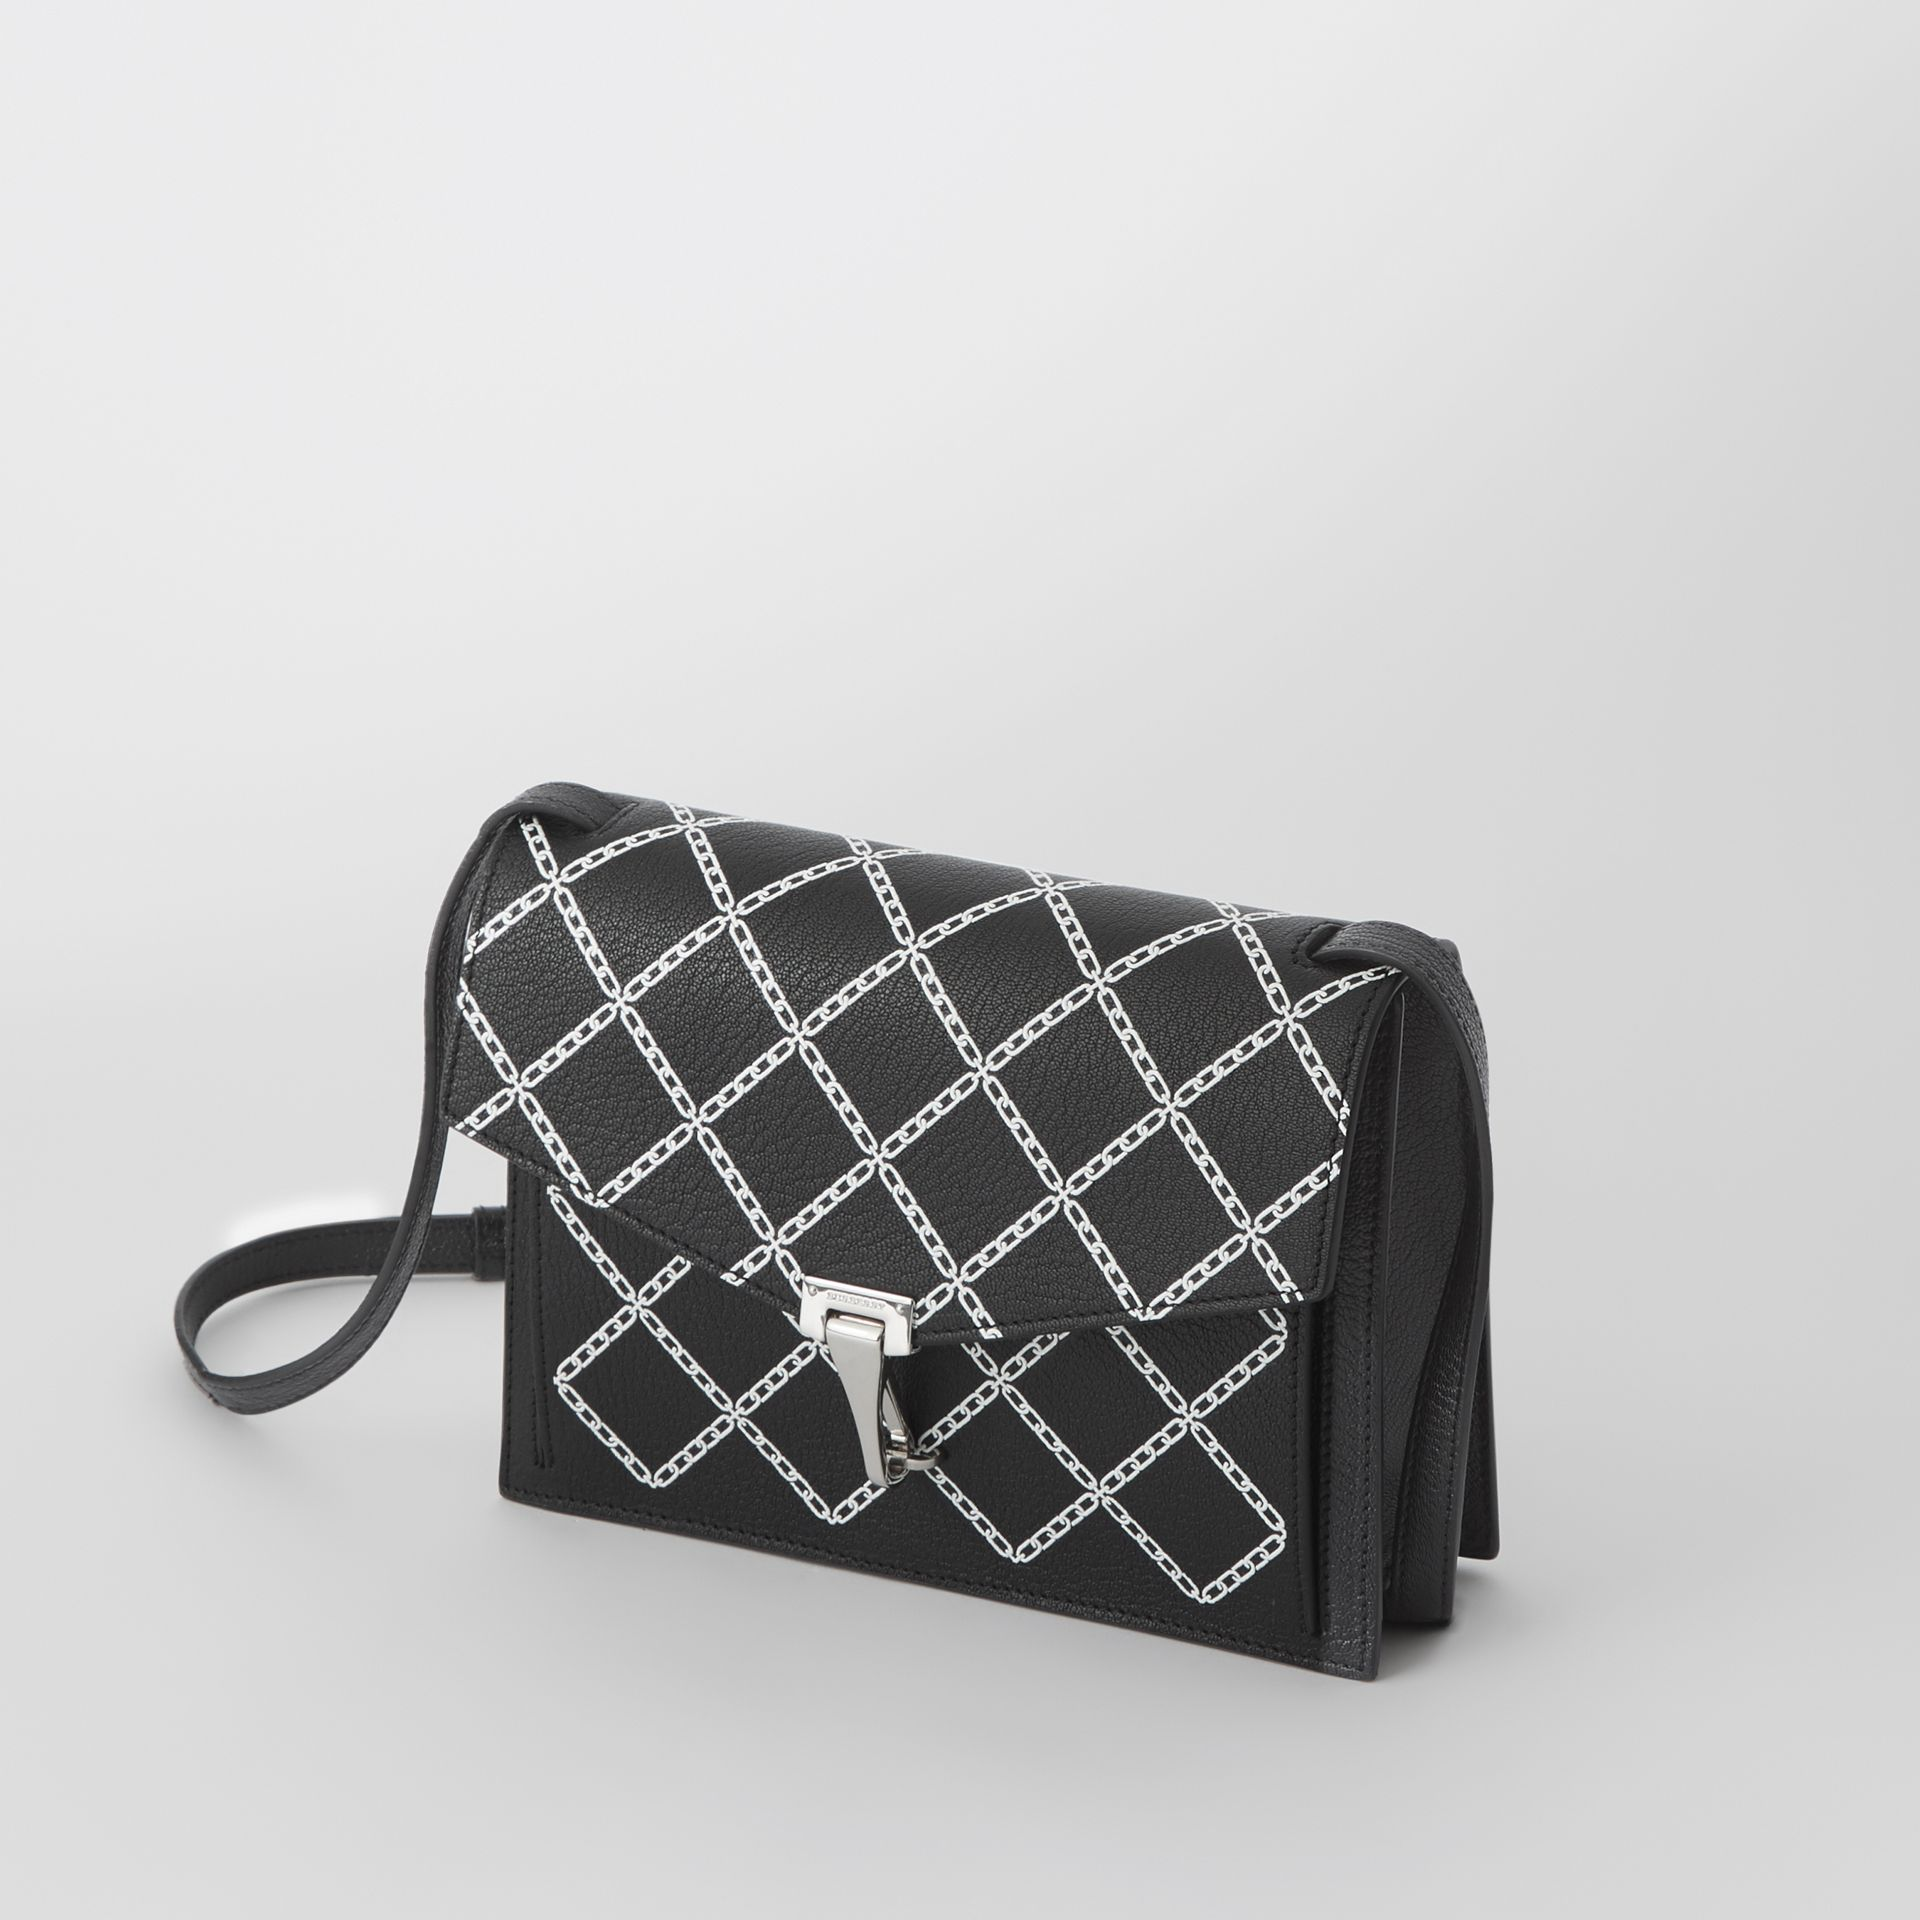 Small Link Print Leather Crossbody Bag in Black - Women | Burberry United Kingdom - gallery image 4